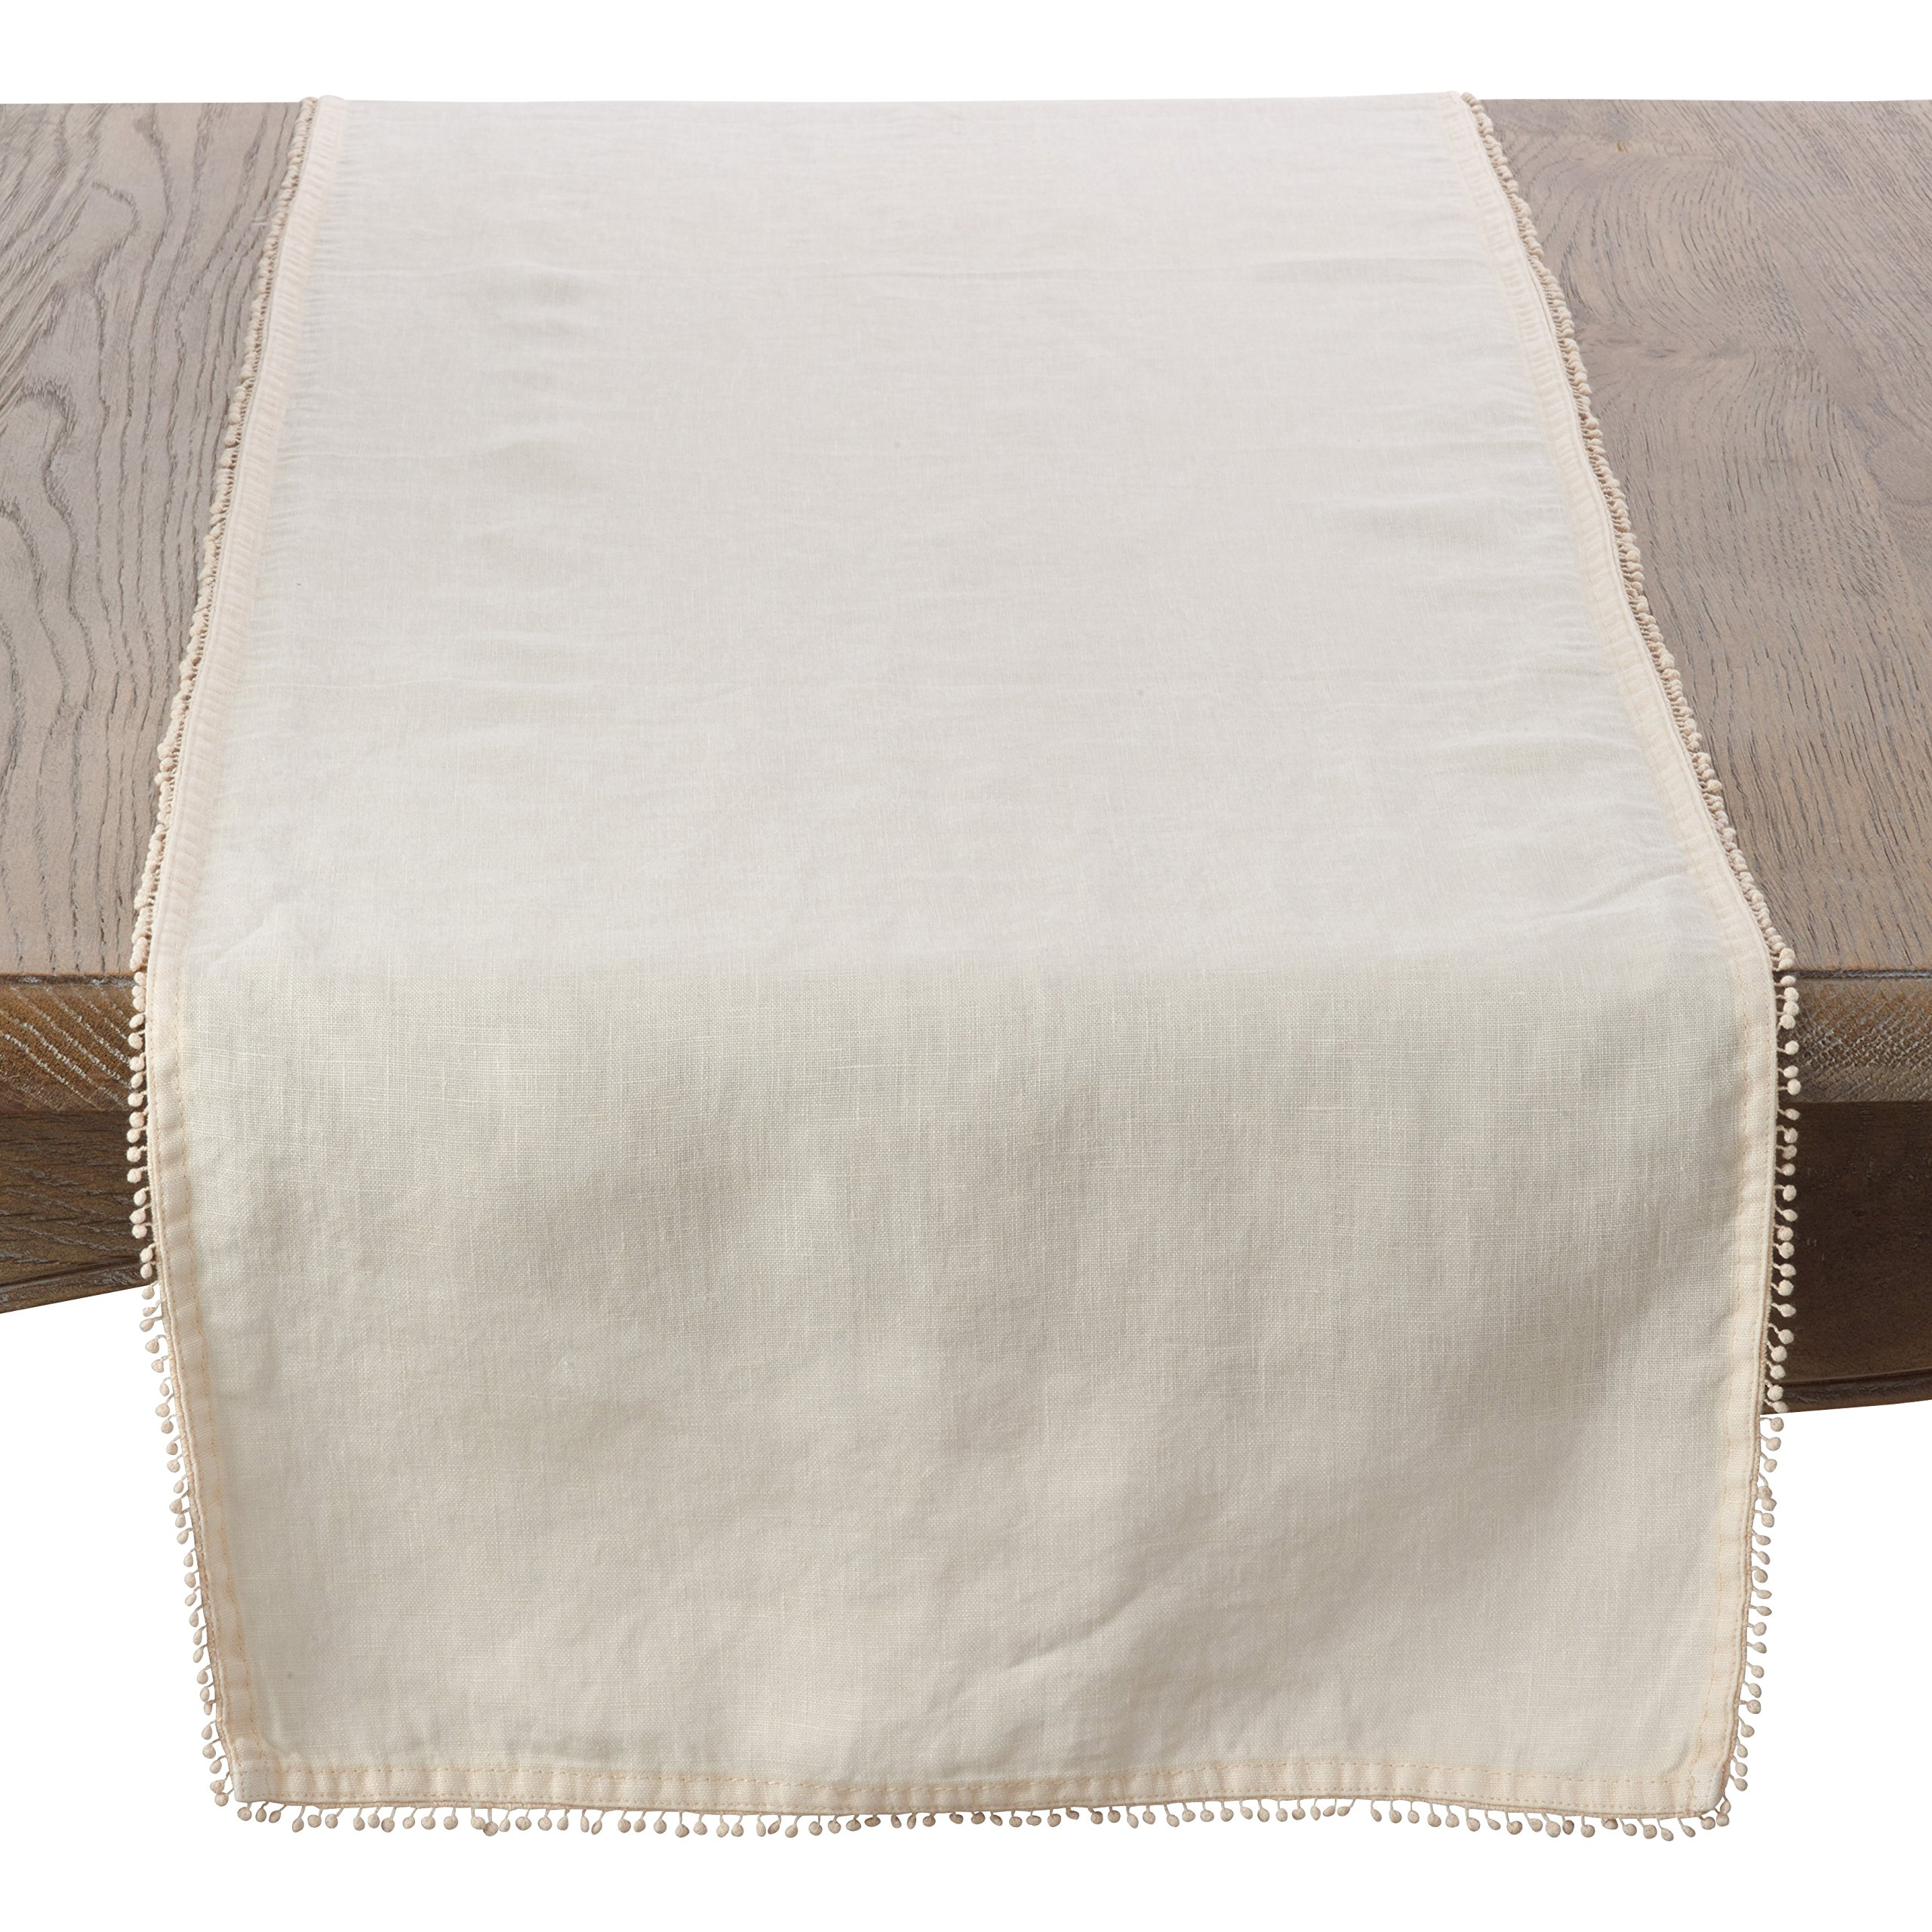 SARO LIFESTYLE Pomponin Collection 100% Linen Table Runner with Pompom Edges, 16'' x 72'', Cream